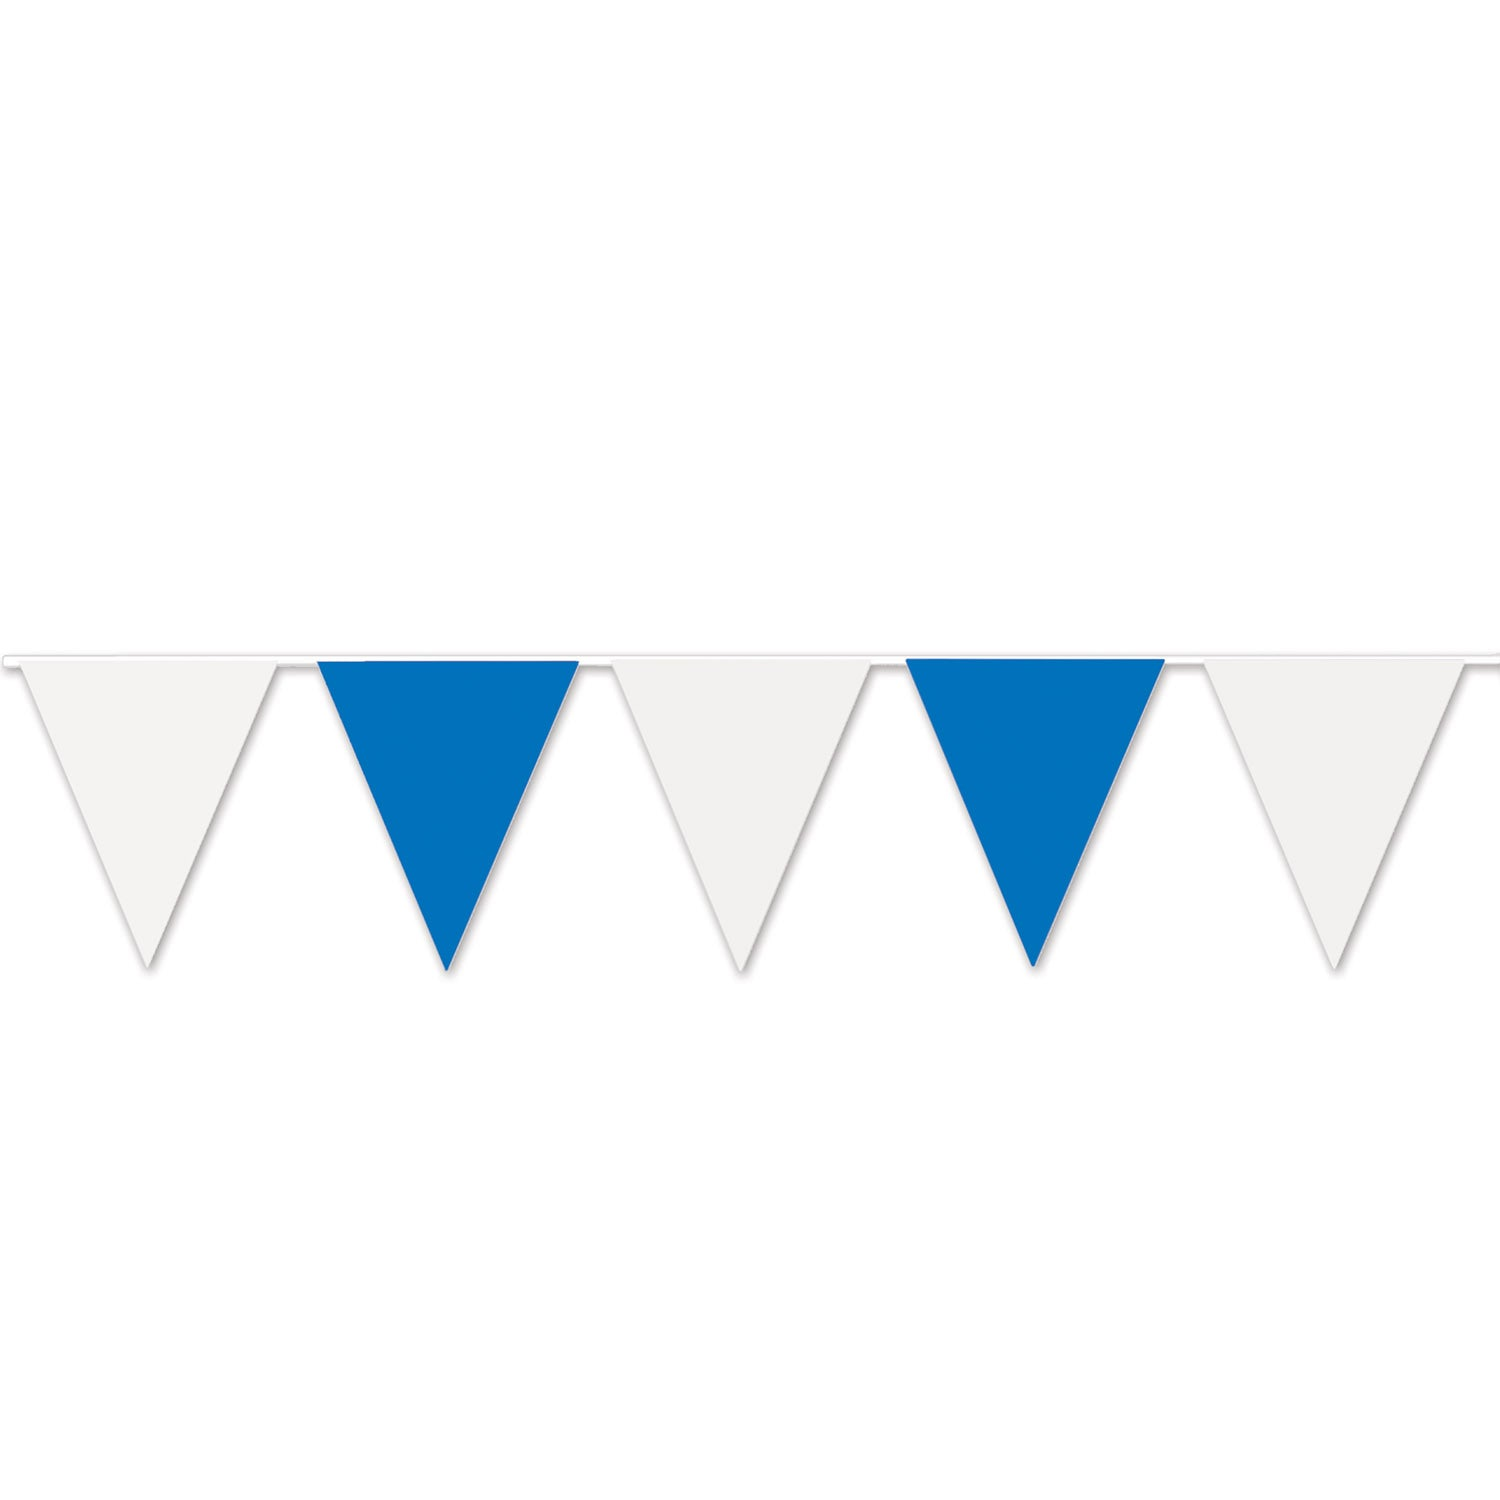 Blue & White Pennant Banner by Beistle - Oktoberfest Theme Decorations